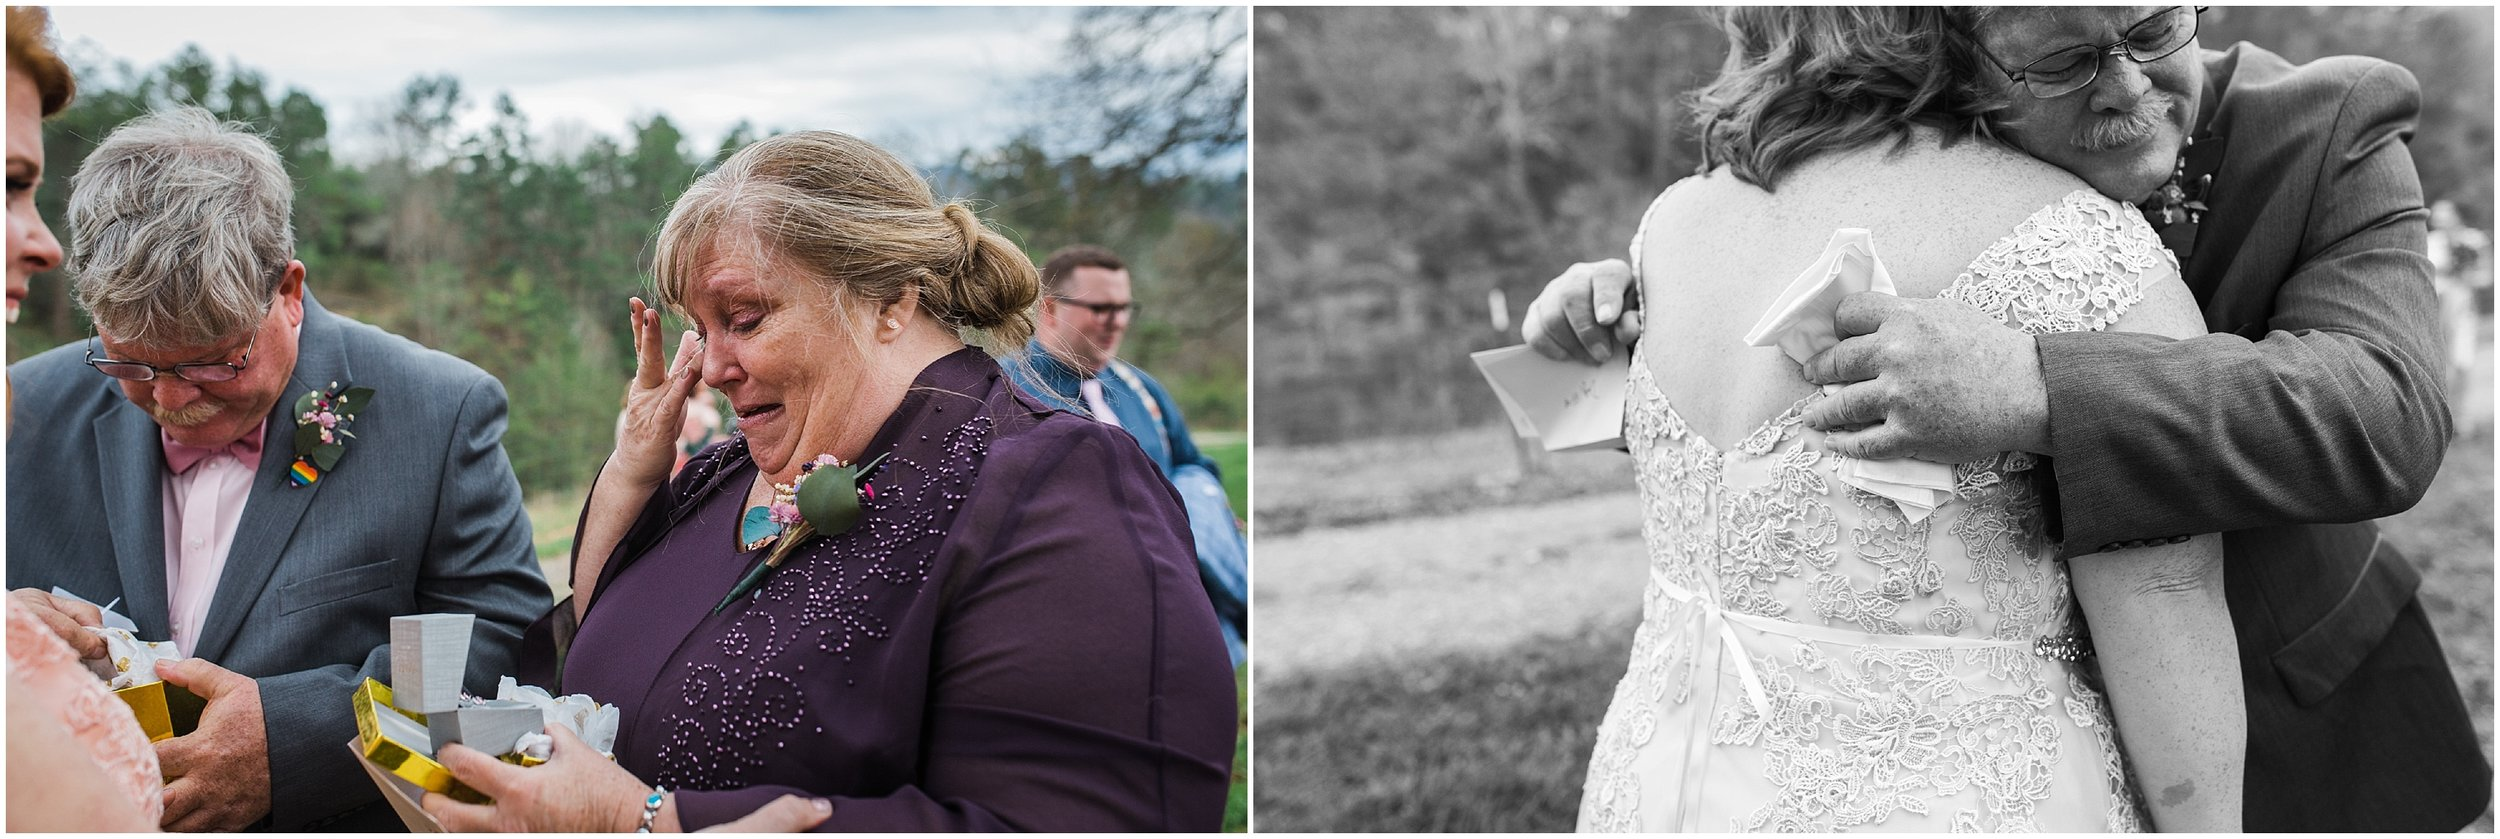 Heather+Rah Wedding Highlights-143.jpg